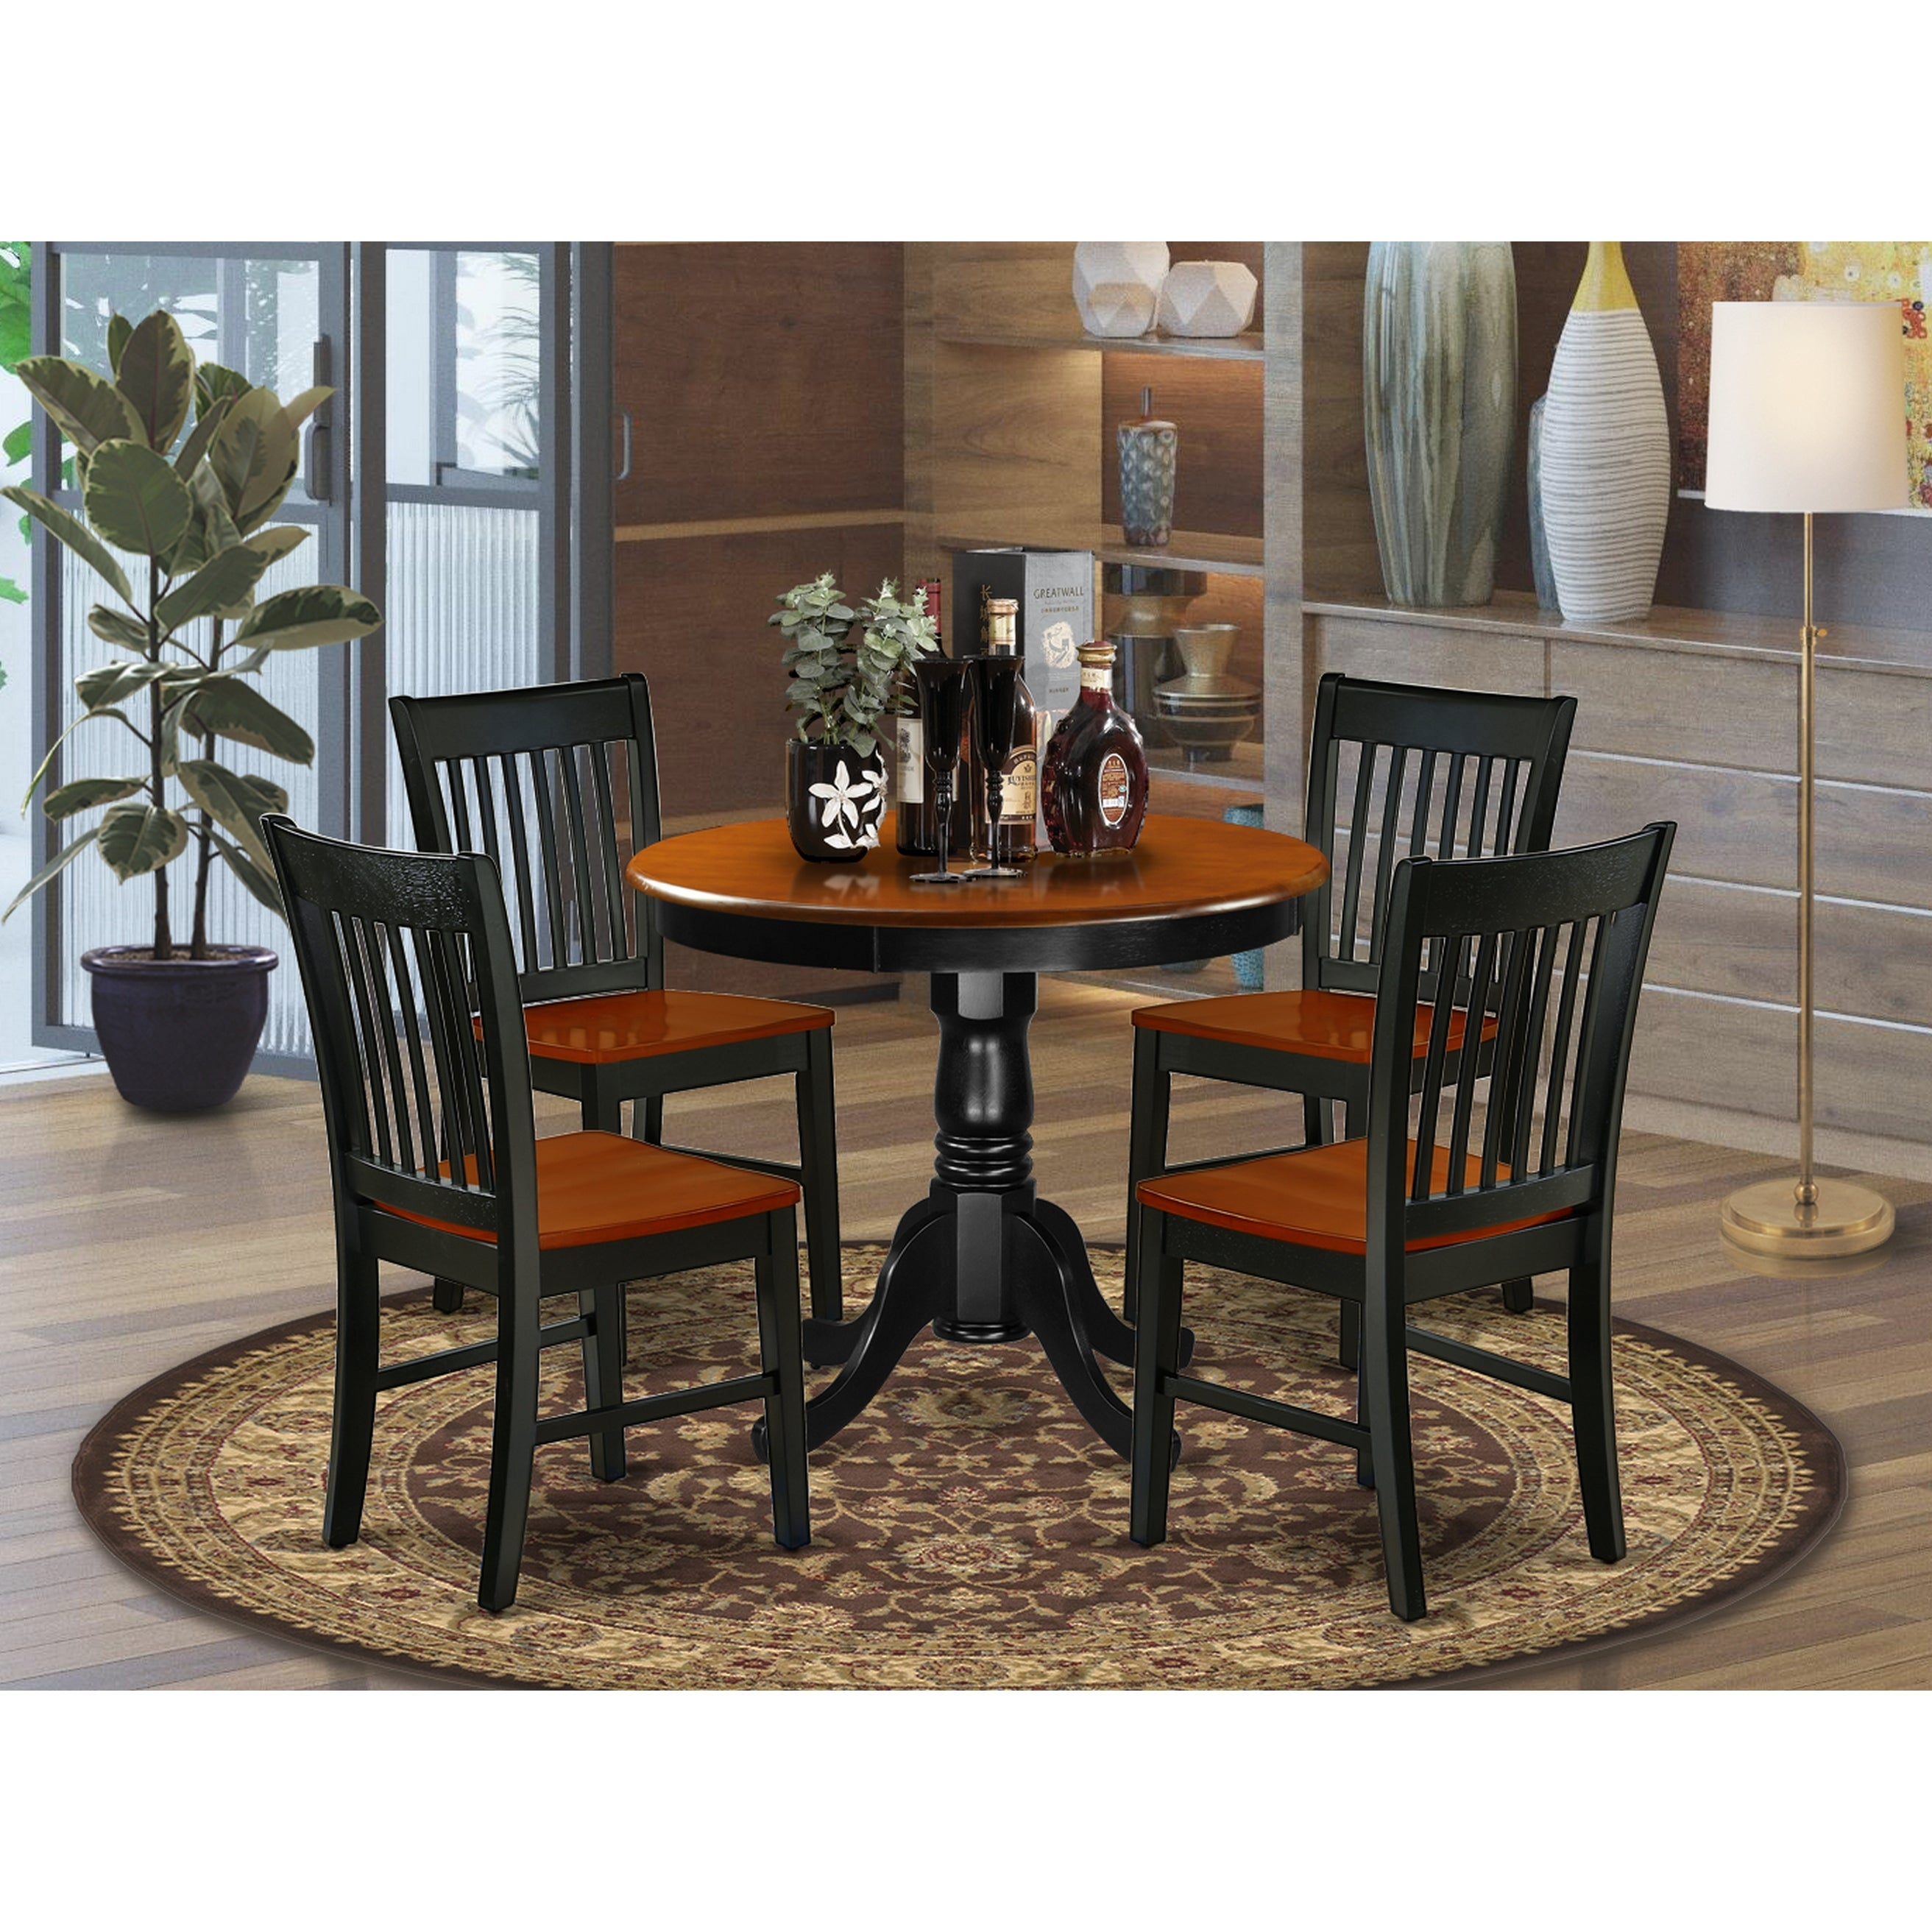 Picture of: Round 36 Inch Table And Wood Seat Chairs Kitchen Set In Black And Cherry Finish Number Of Chairs Option Overstock 28712098